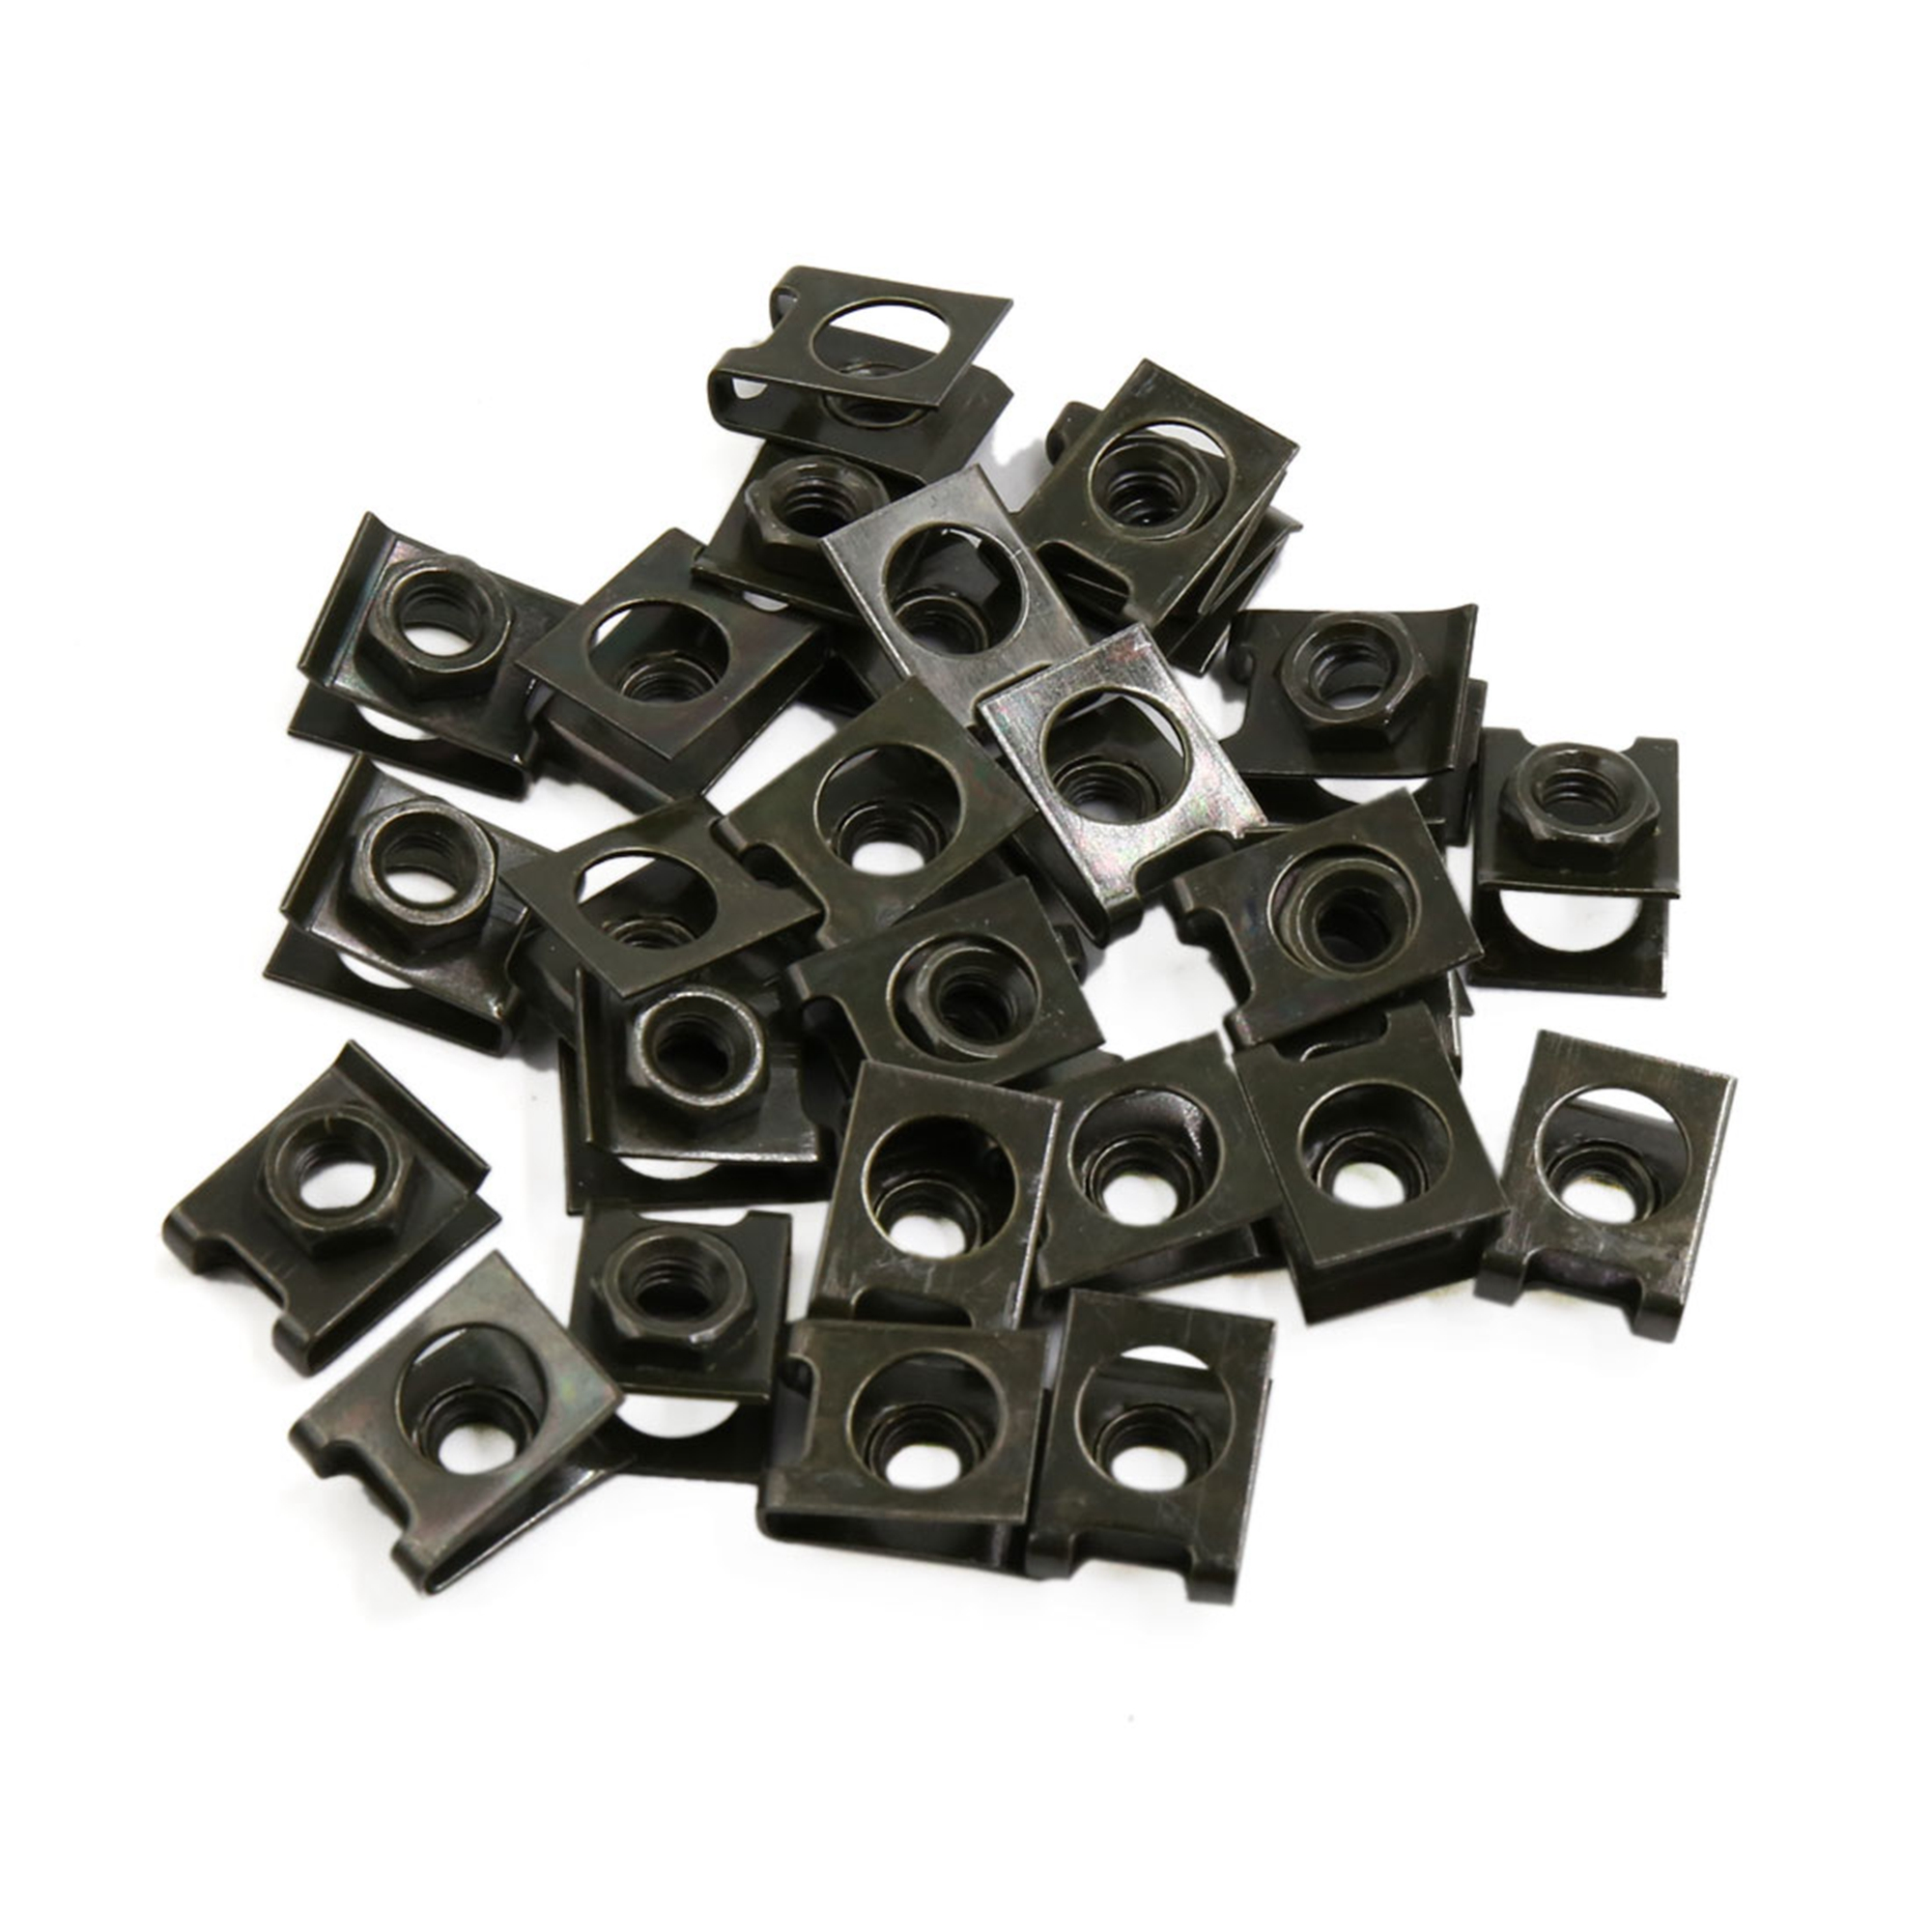 27pcs Dark Green Metal Motorcycle Fairing Bolts Screws U-Type Fastener Clips